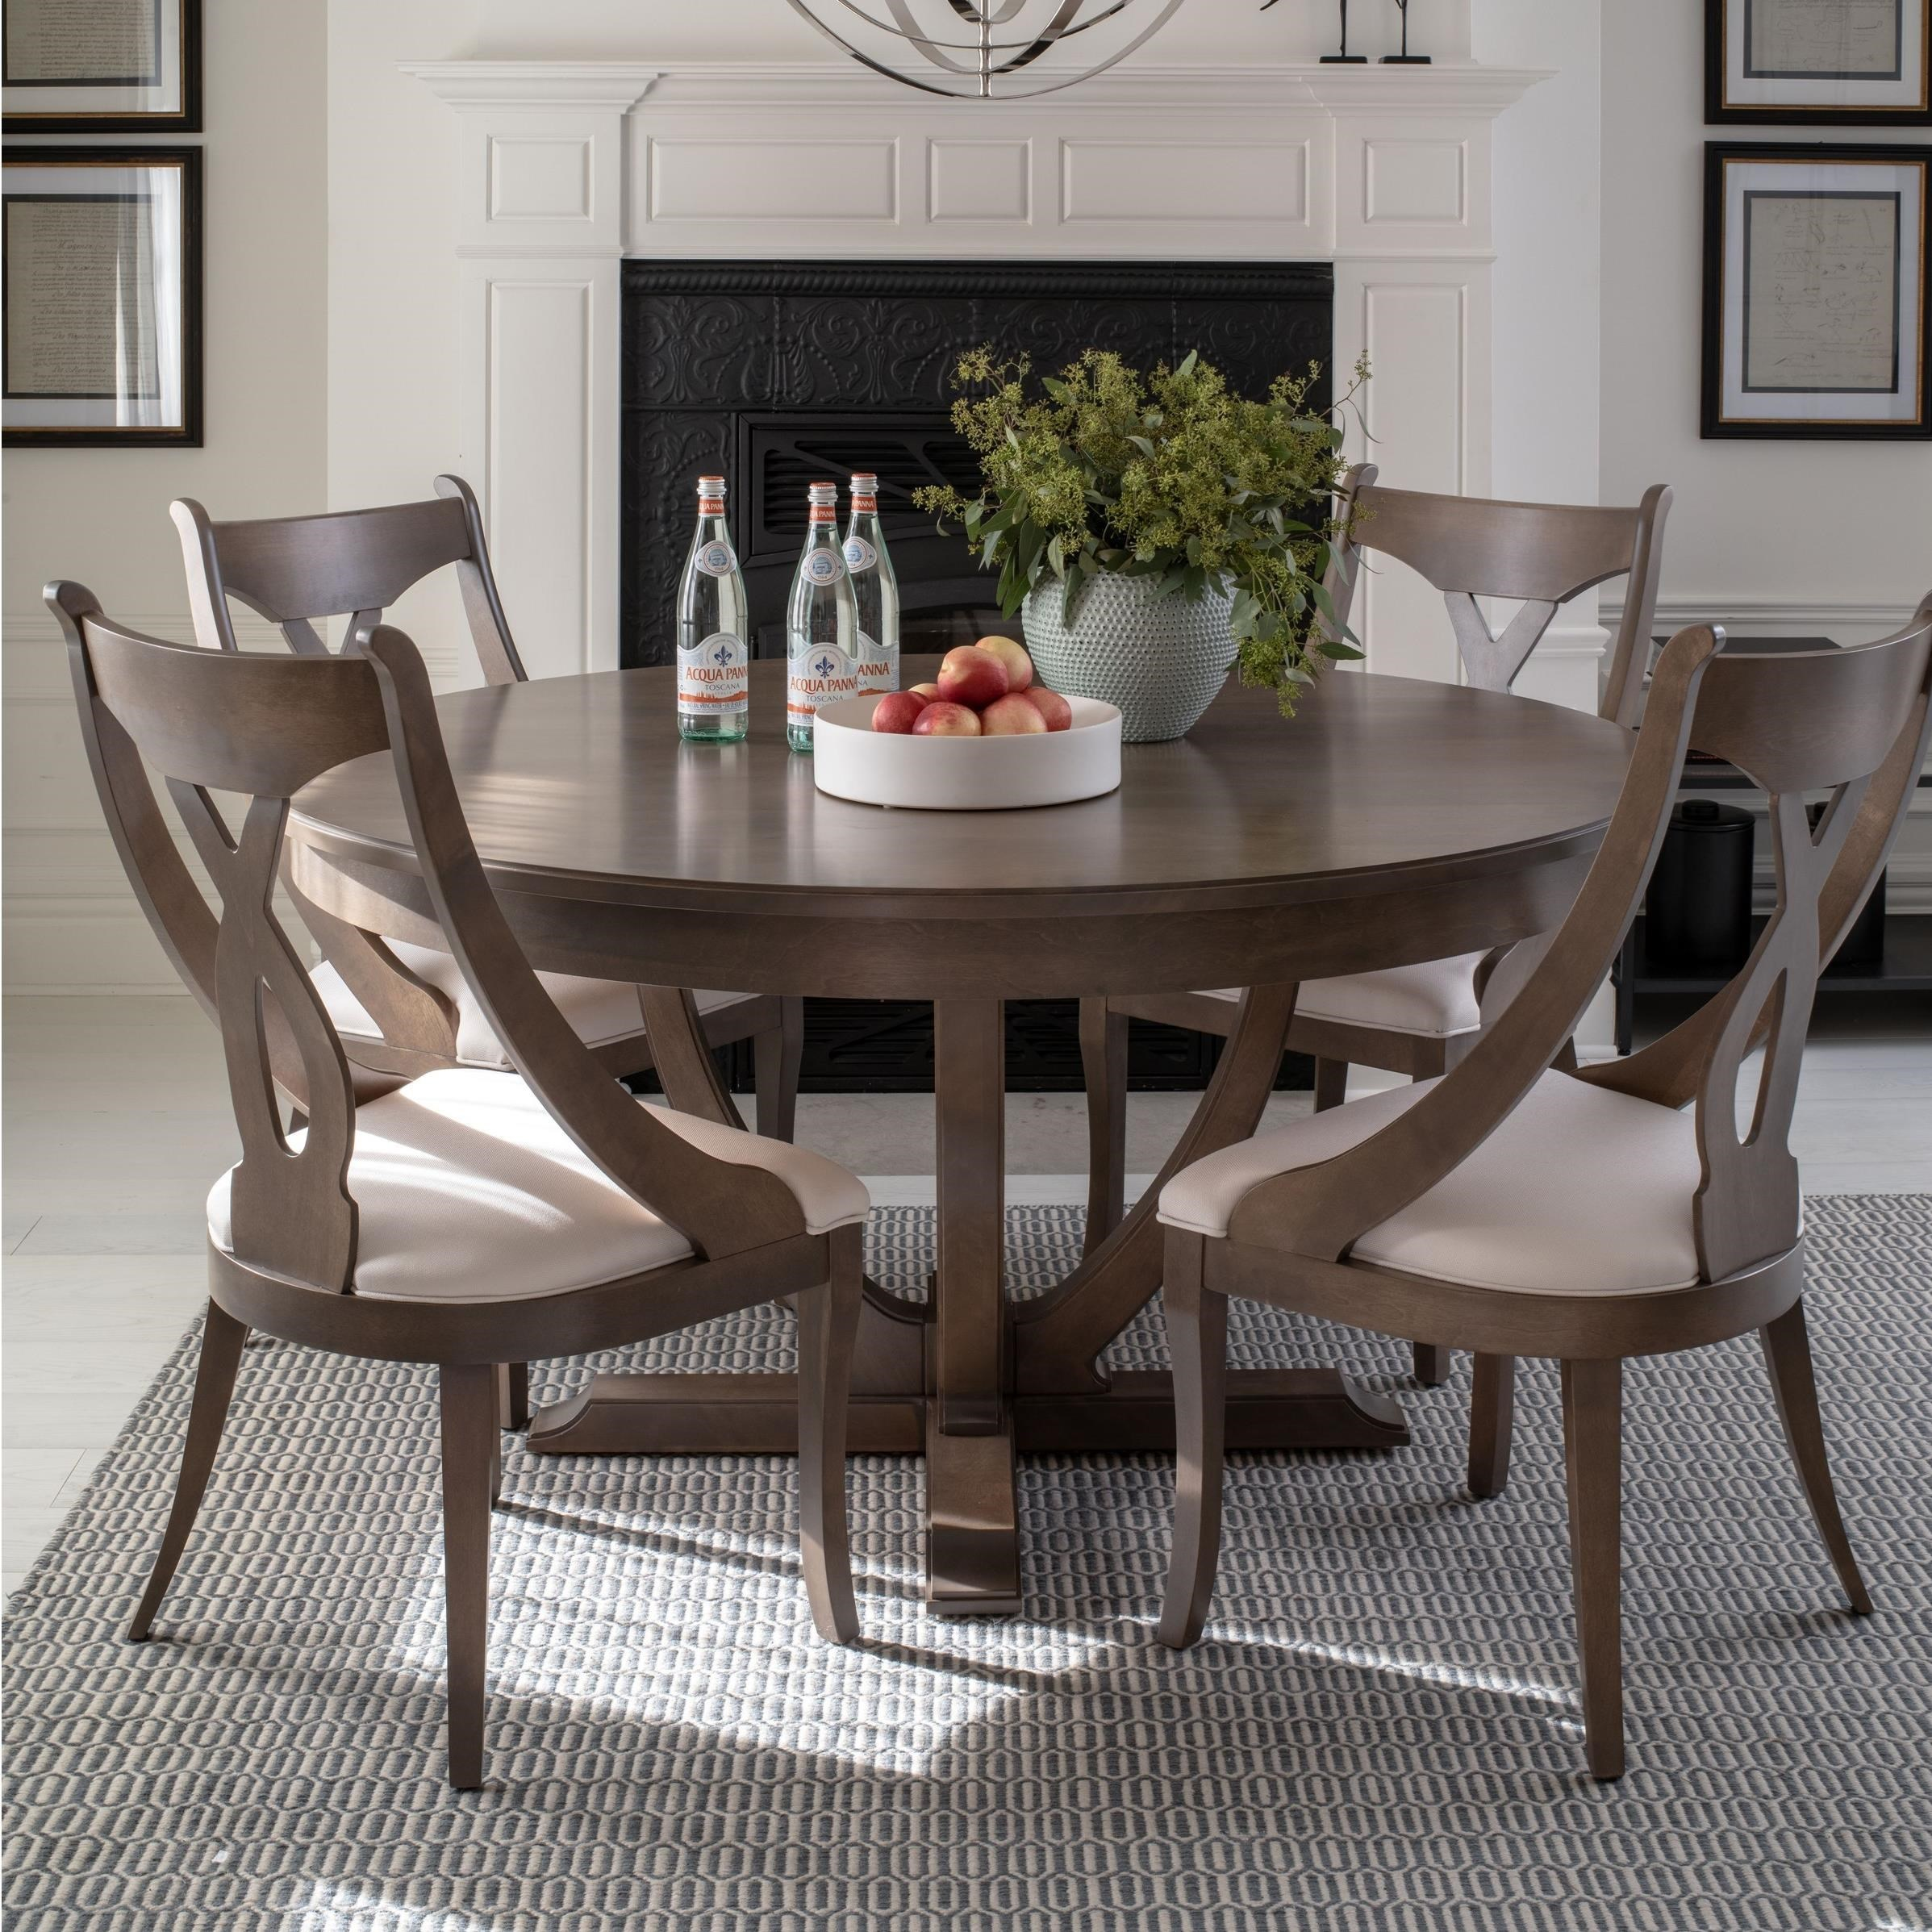 Classic Round Dining Table Set by Canadel at Dinette Depot